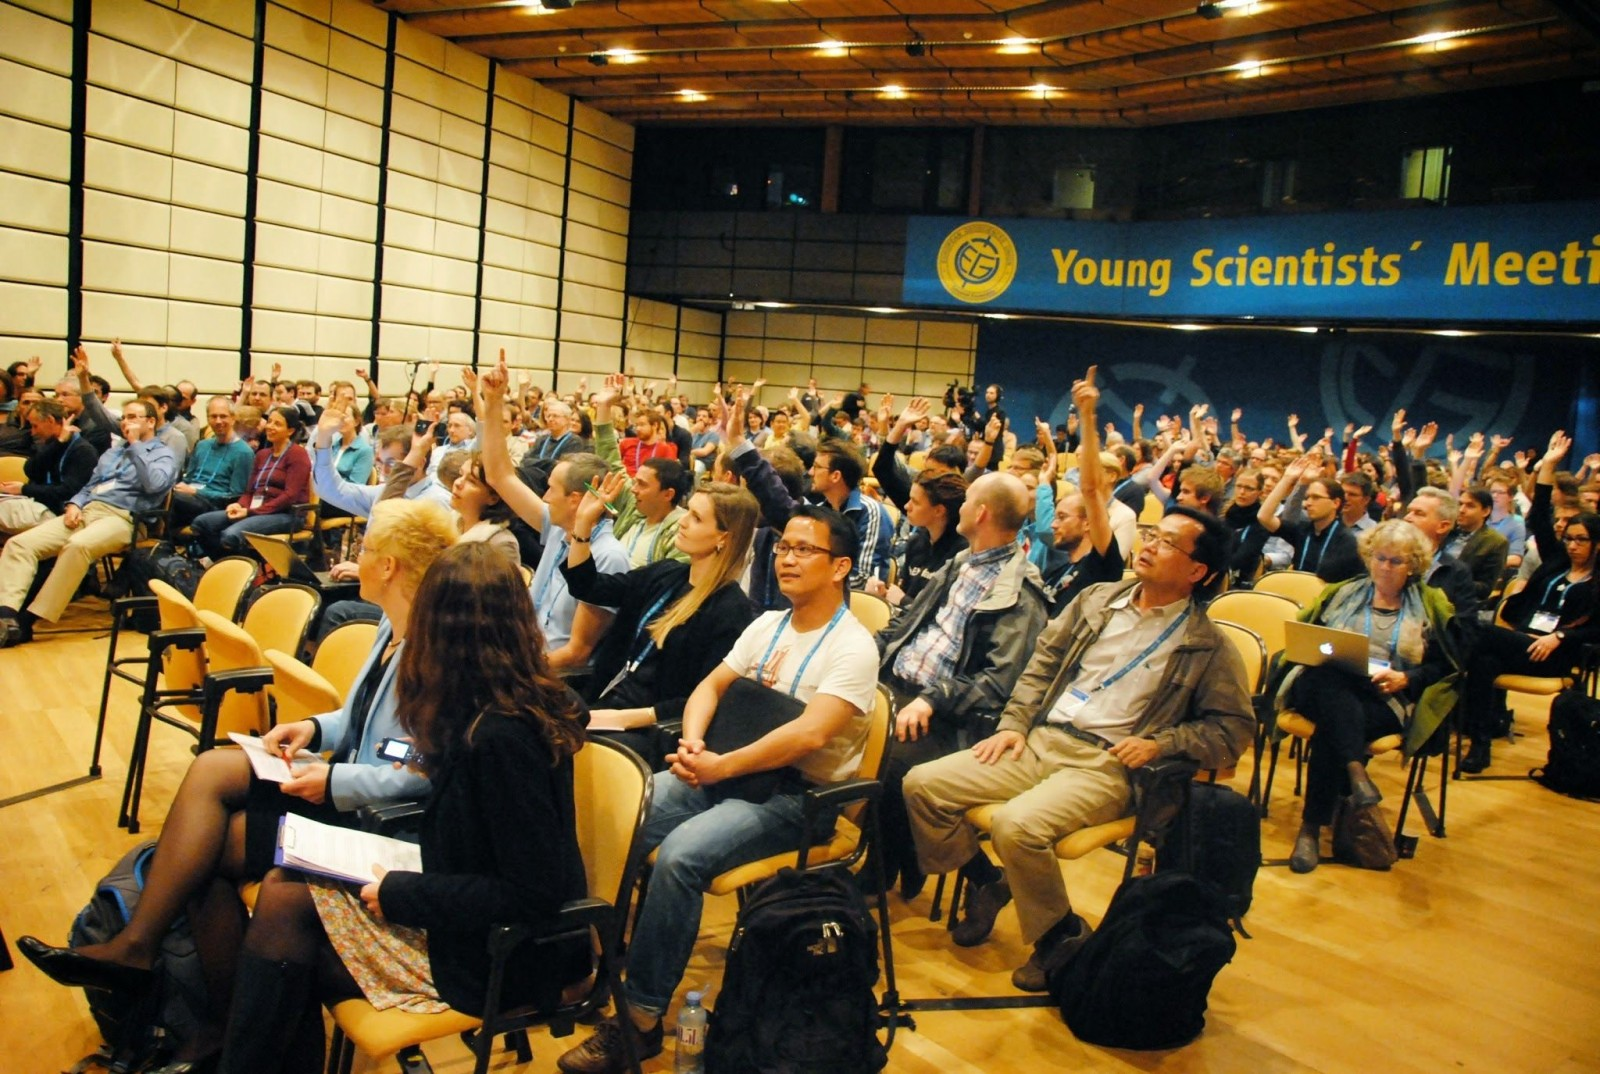 The audince during a Great Debate at the General Assembly in 2014.